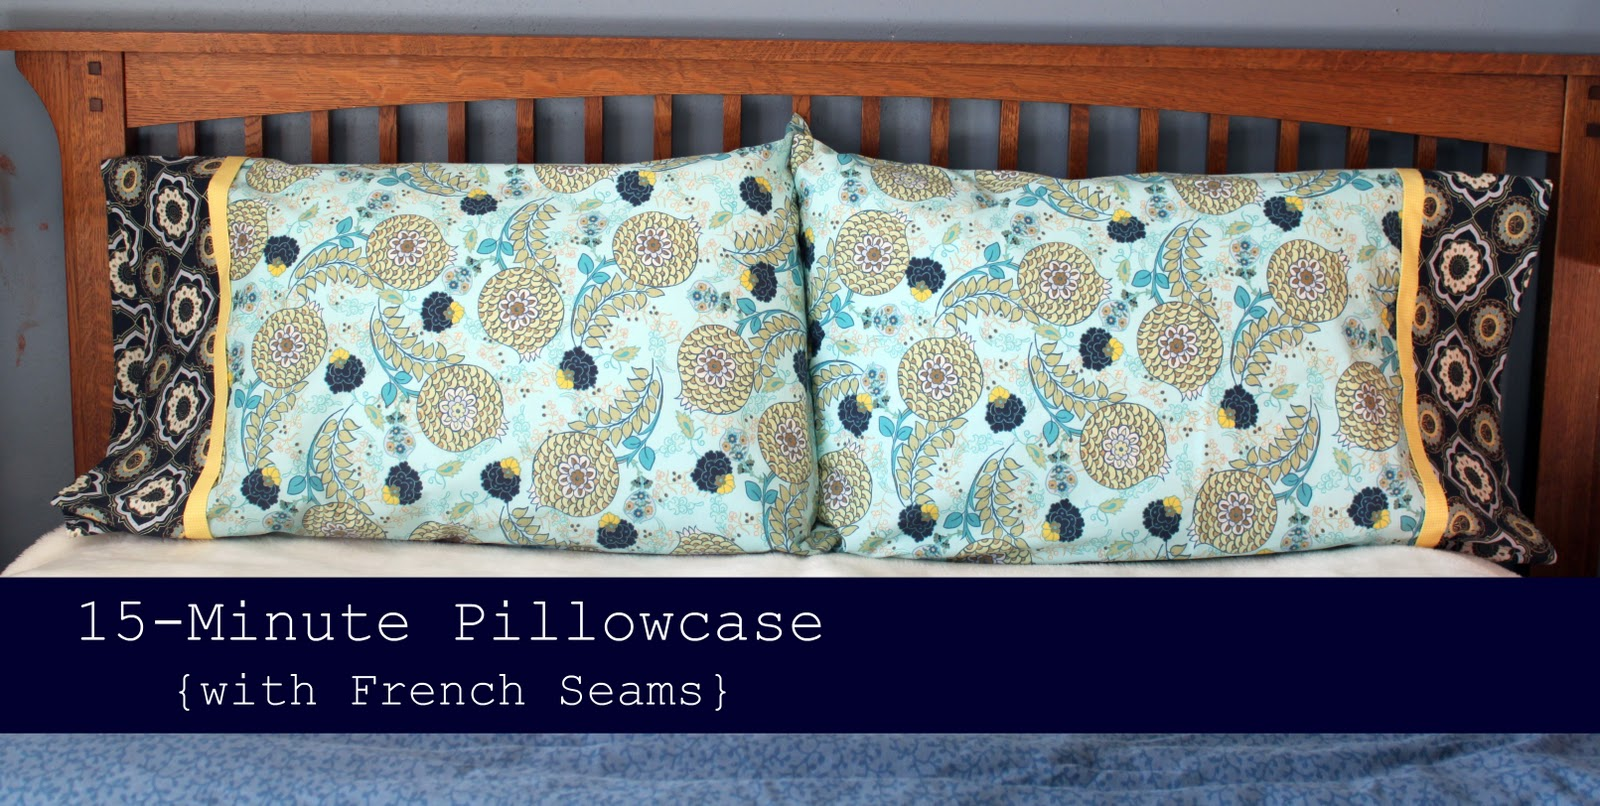 Diy Pillowcases With French Seams: 15 Minute Pillowcase {with French Seams}   Tutorial   The Cottage Mama,